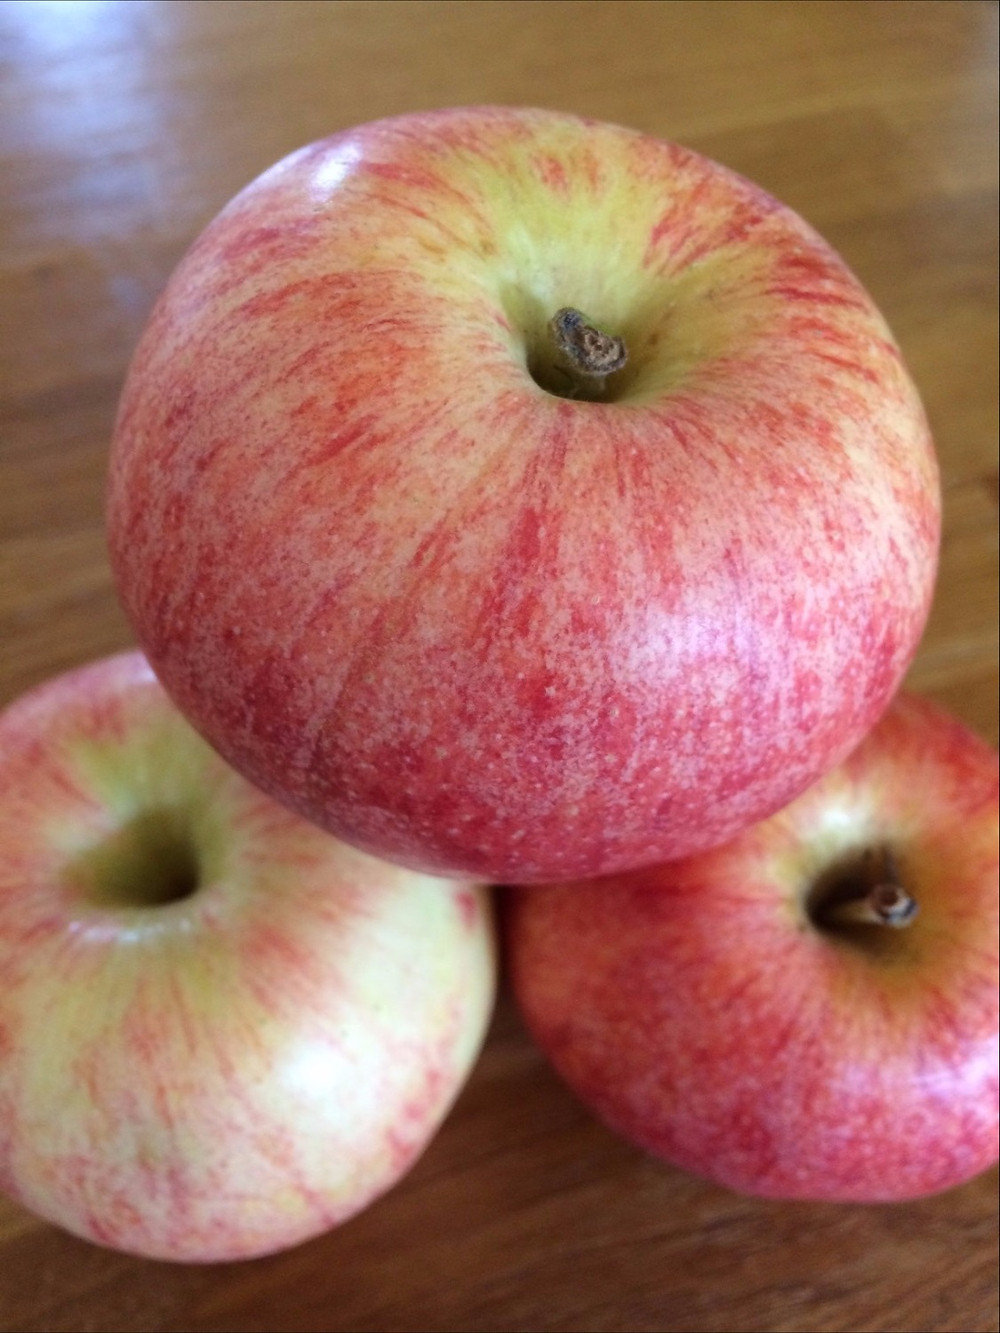 Apples without packaging - the more sustainable option